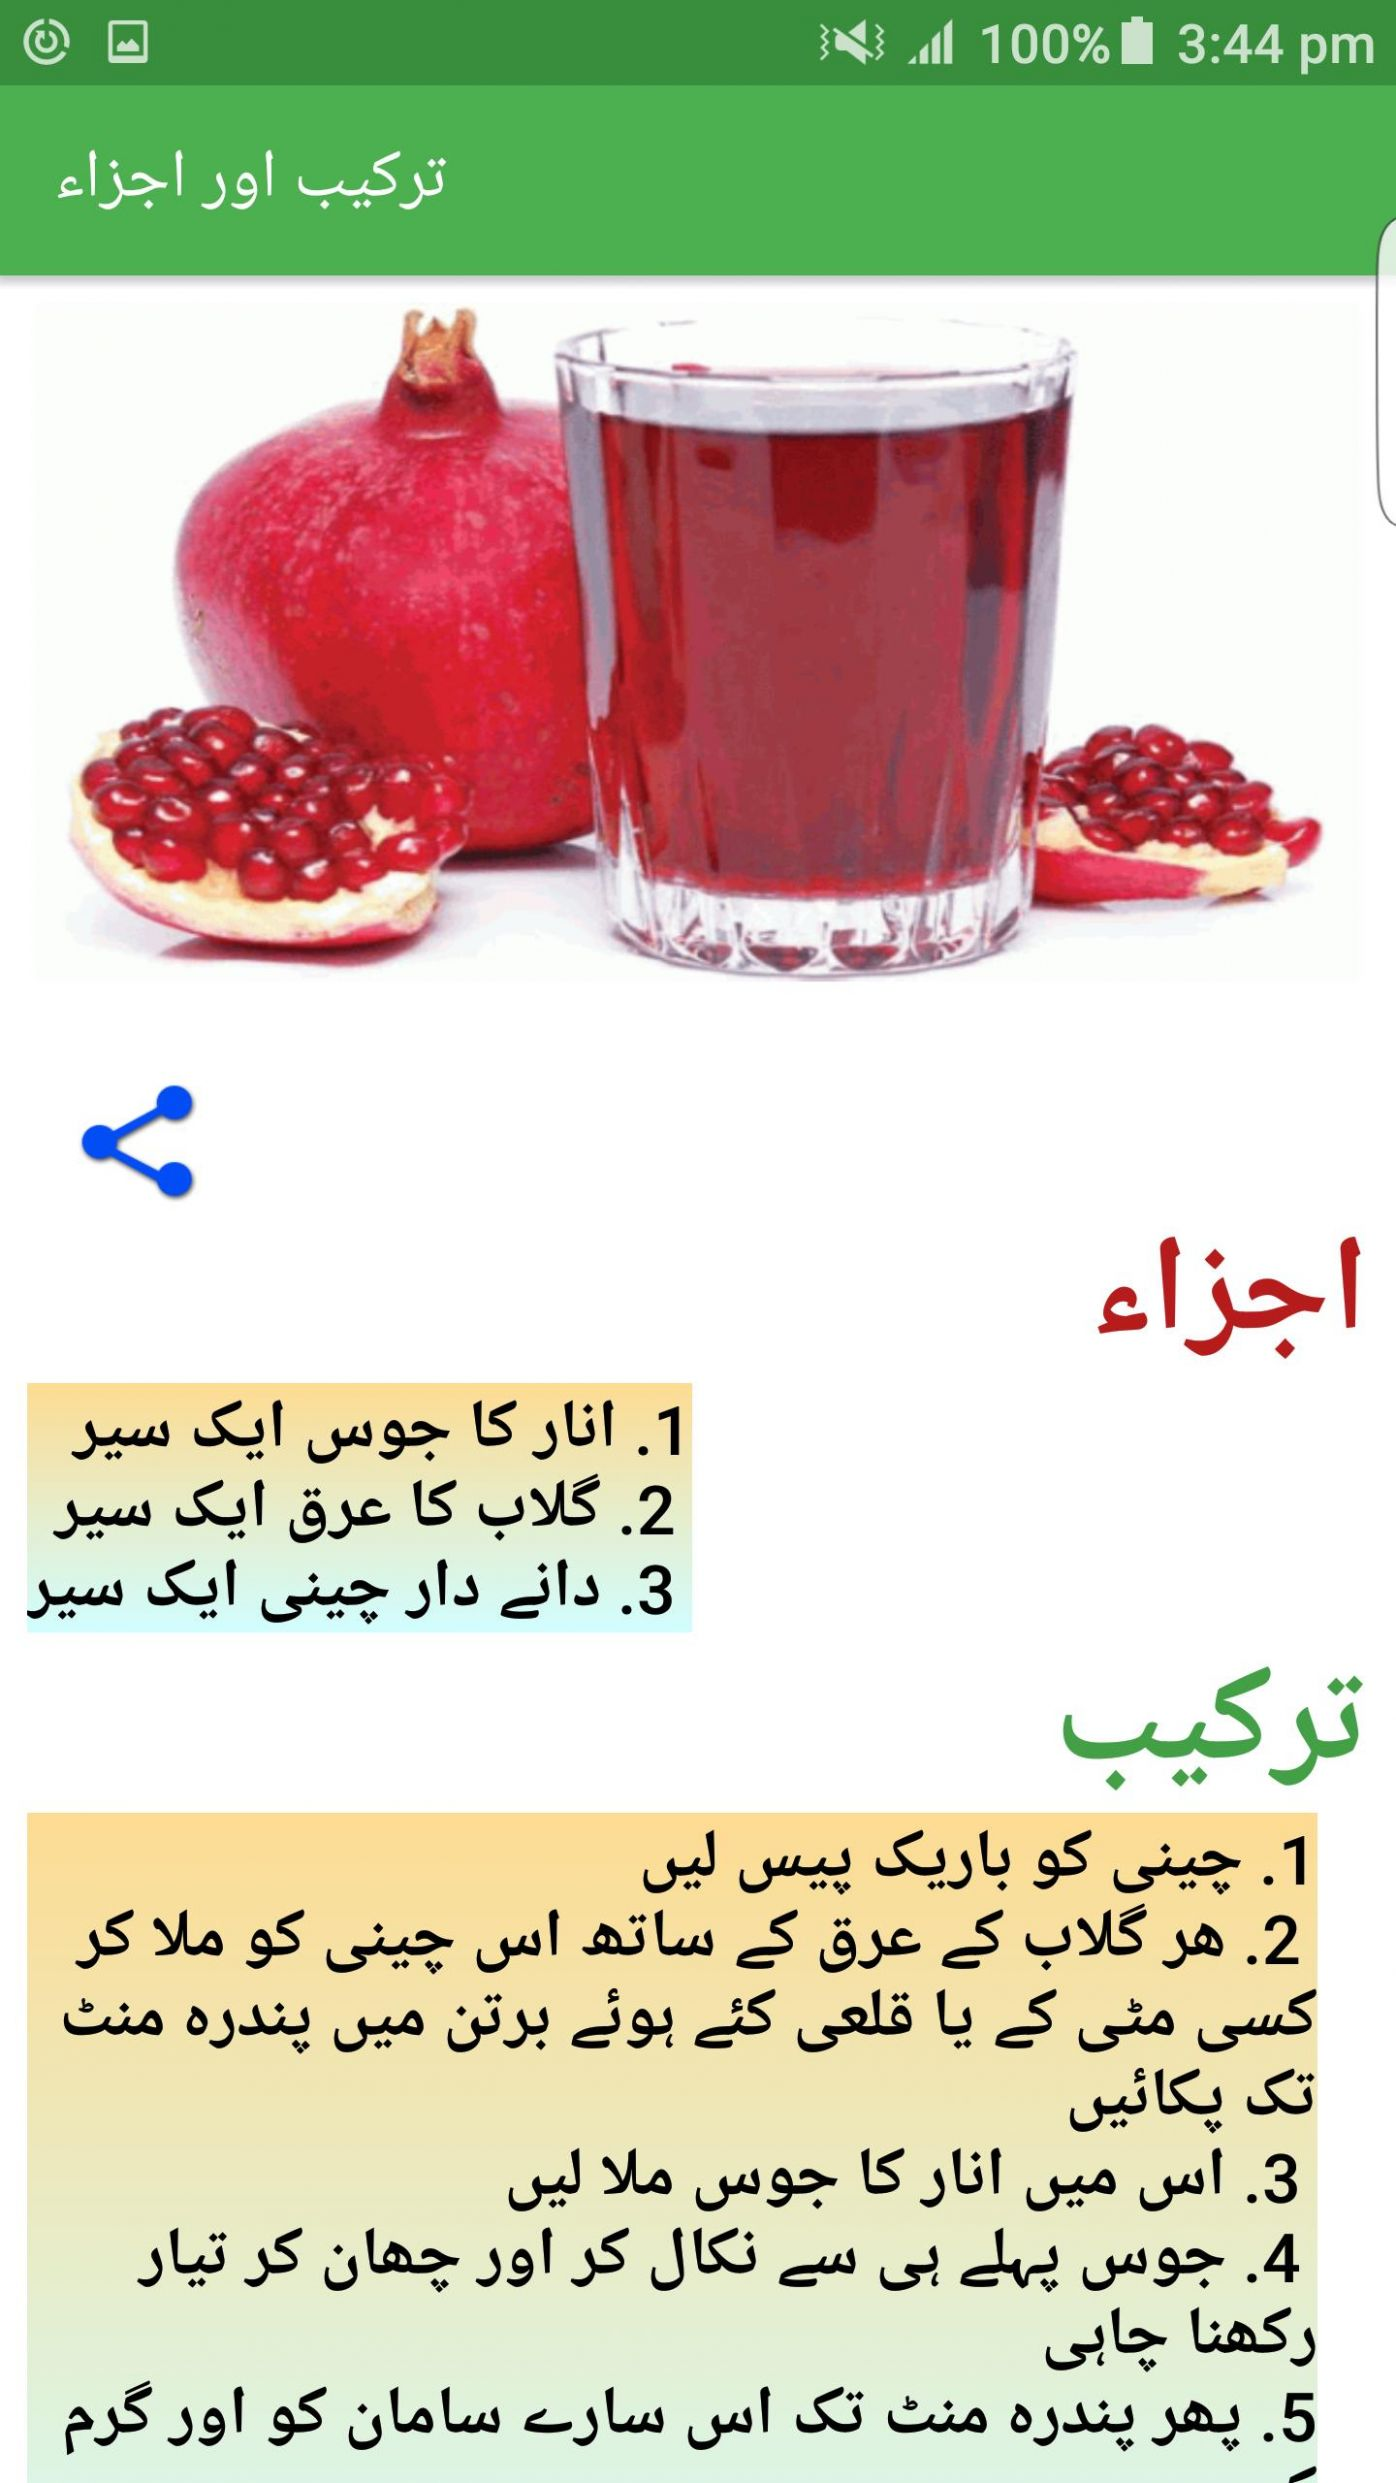 Ramzan Mashrobat sharbat recipe in urdu for Android - APK Download - Urdu Recipes Of Sharbat